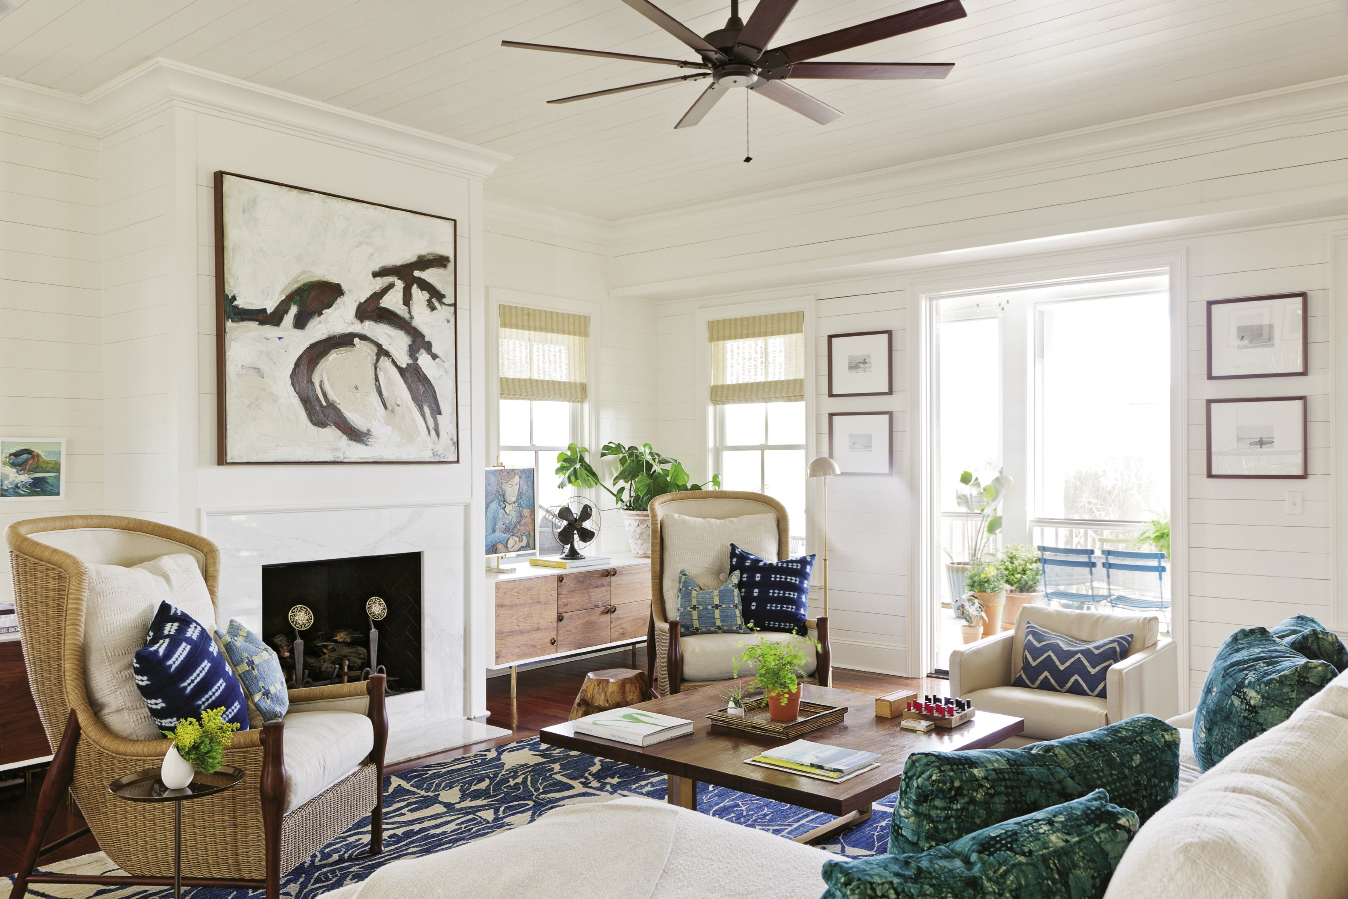 """Lynne was inspired to create the painting above the fireplace after seeing her dog, Jasper, frolicking on the shore. """"She's always running and jumping,"""" she says. """"This is an abstract expression of her movement."""""""